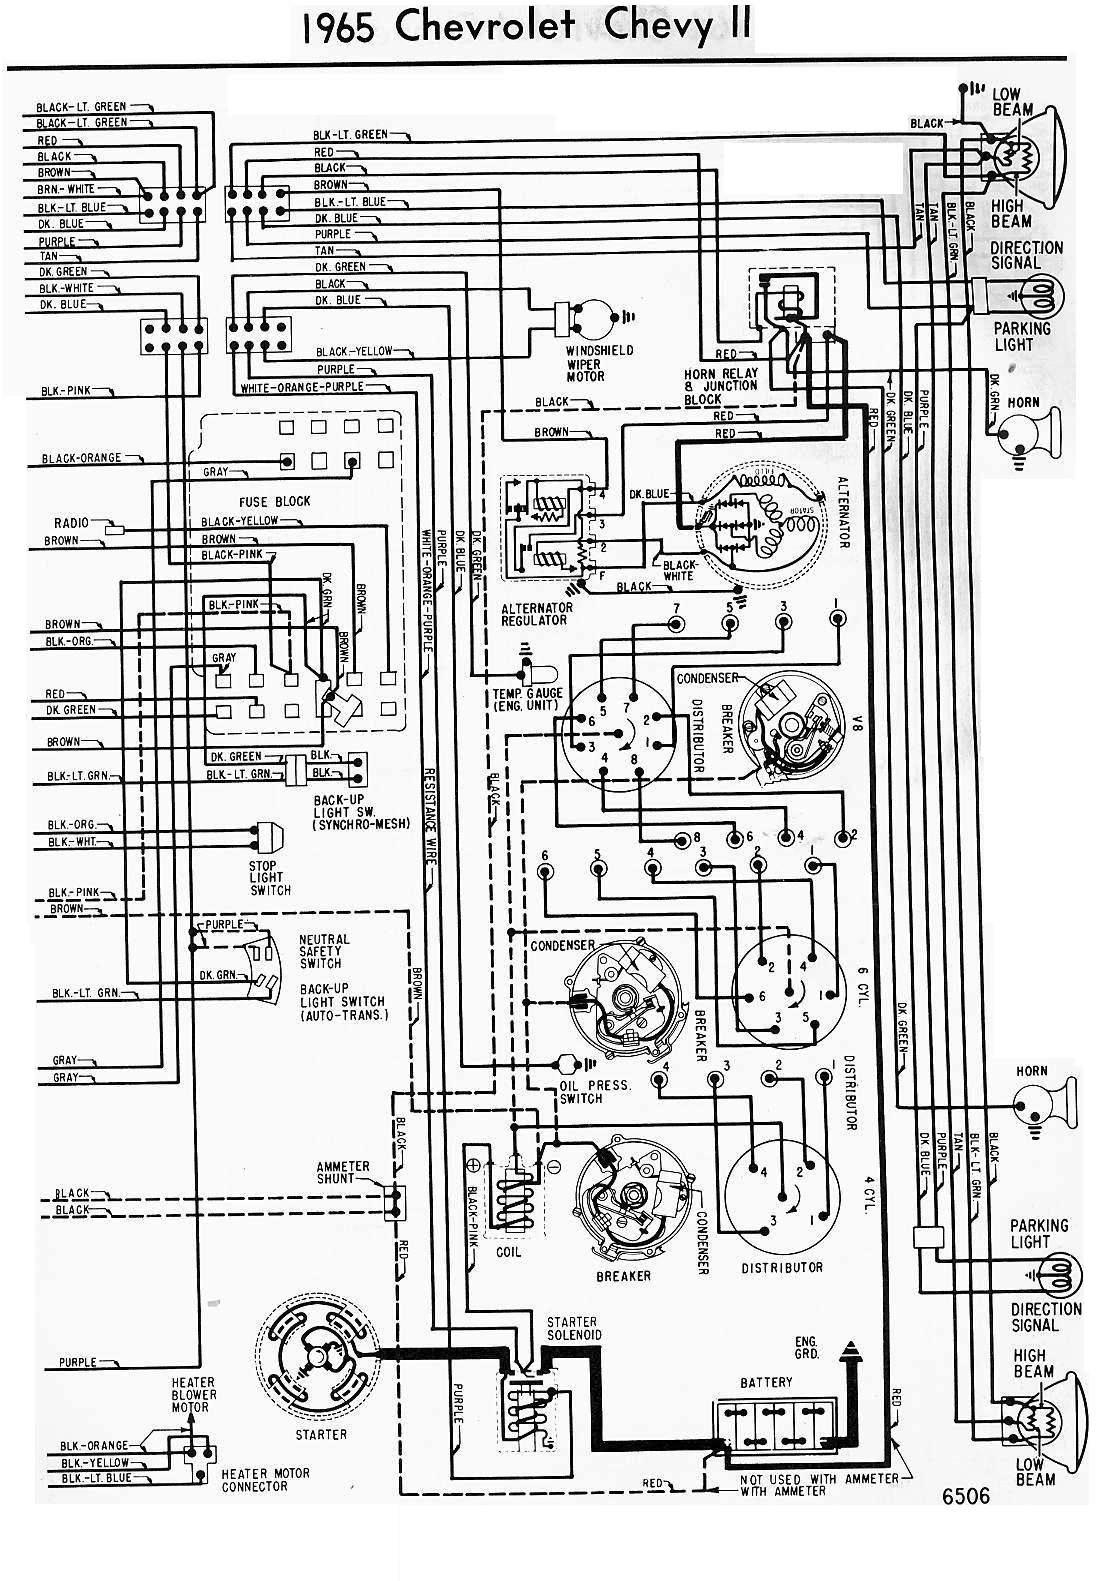 1965 gm stereo wiring diagram mb 5812  1965 fiat 500 wiring diagram schematic wiring  1965 fiat 500 wiring diagram schematic